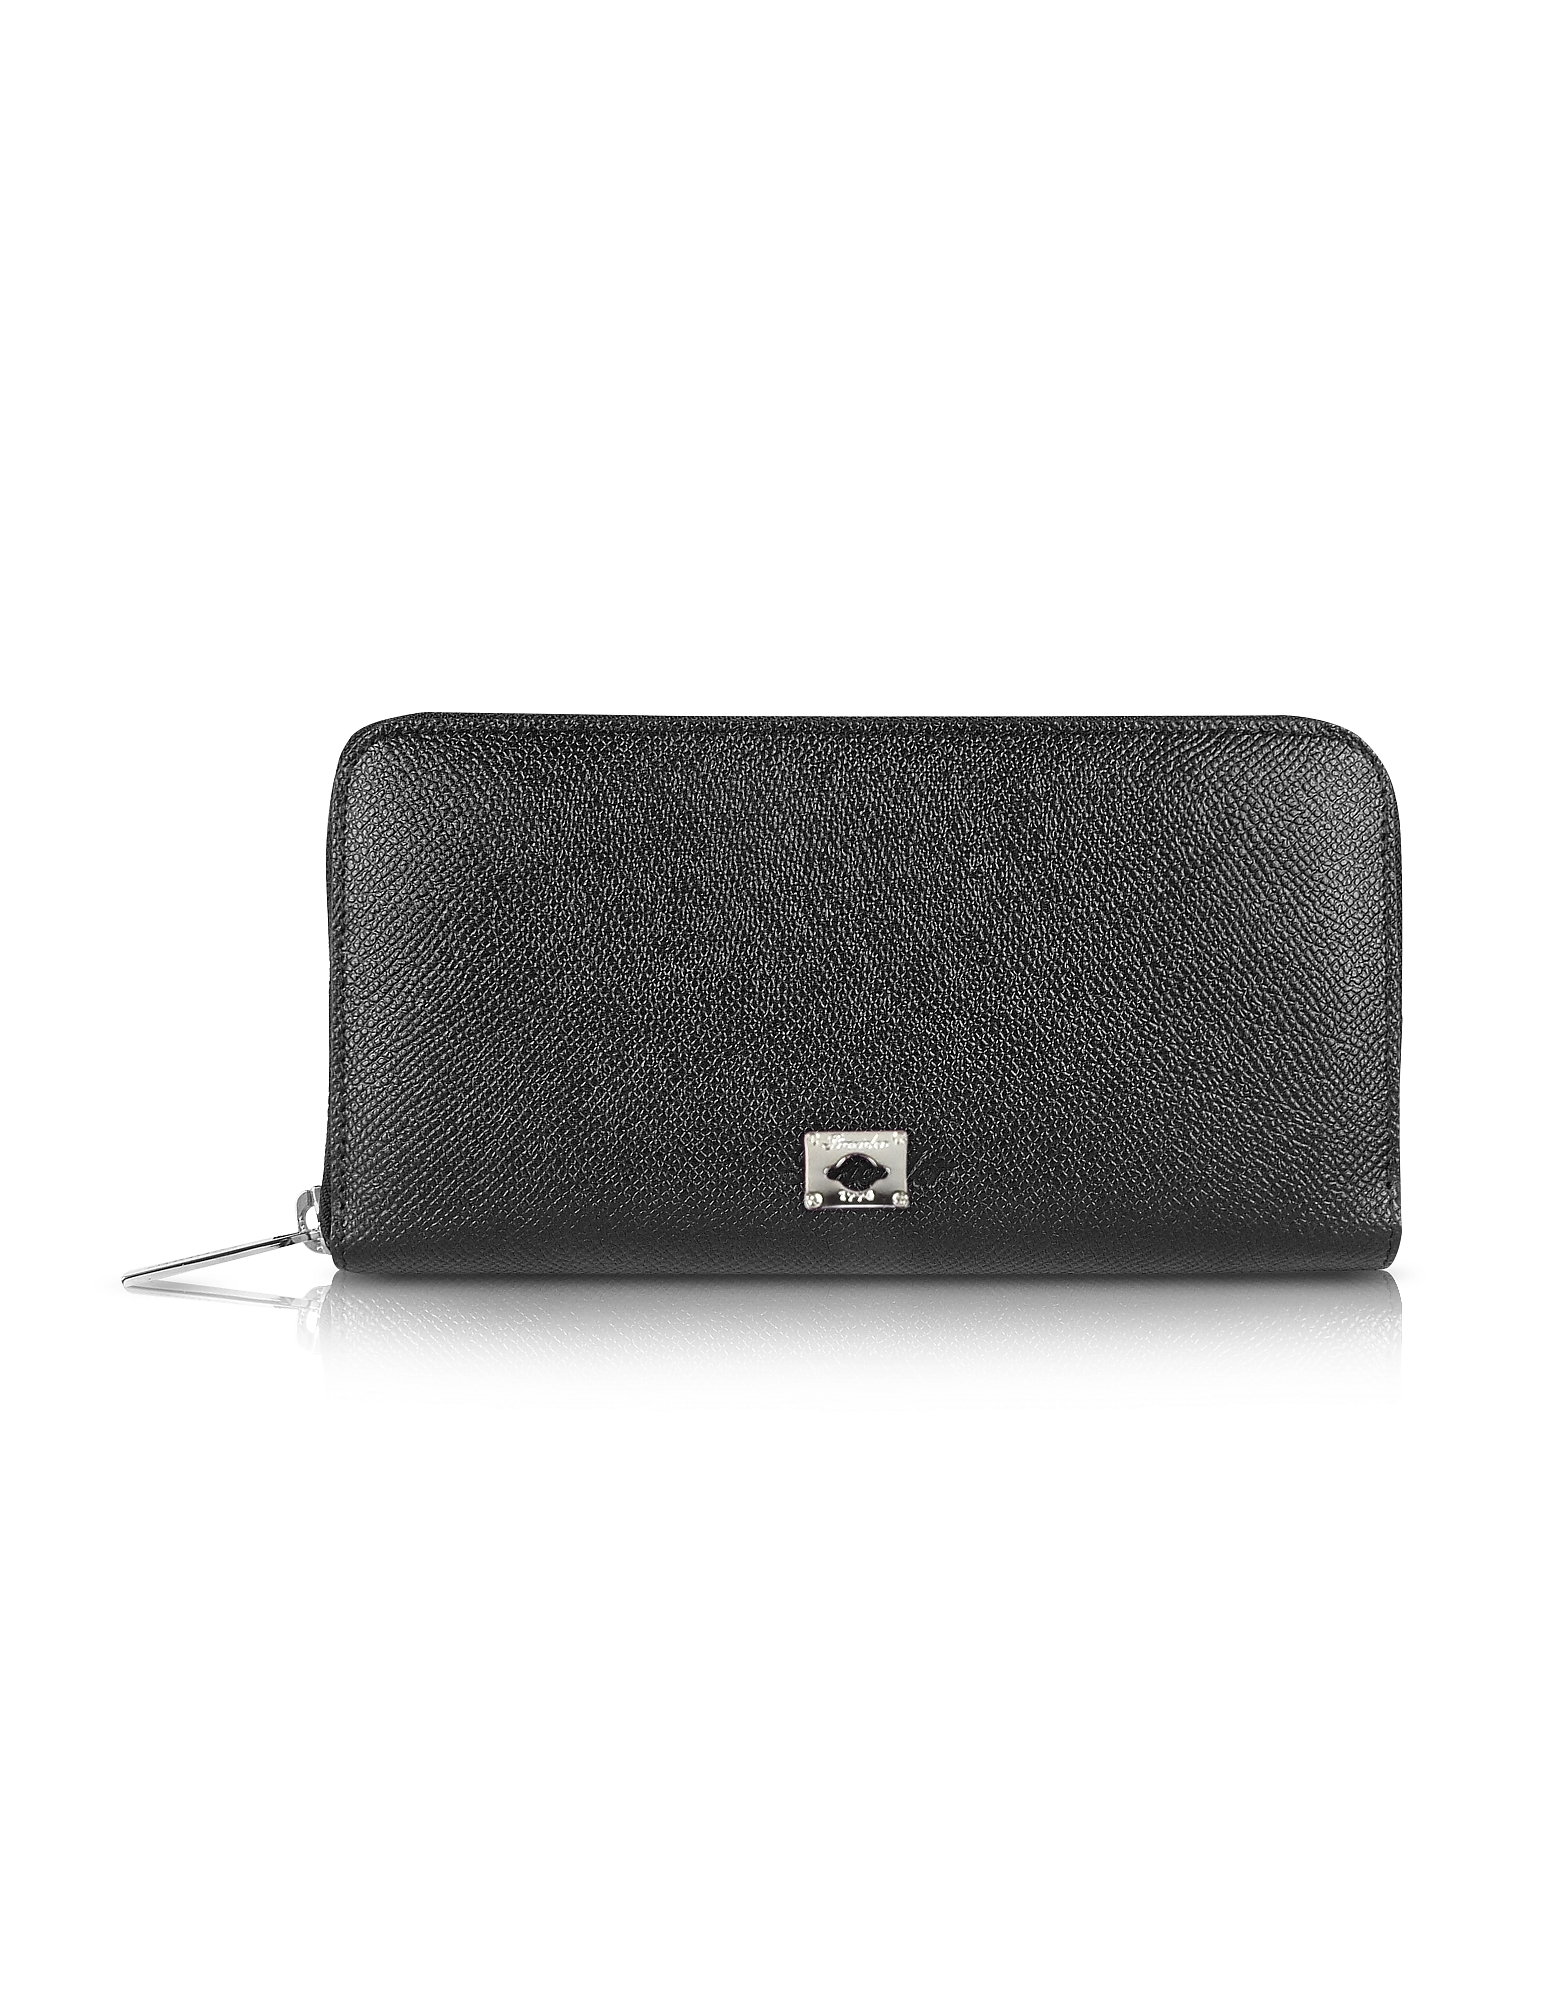 City Chic - Women's Zip Around Calfskin Wallet